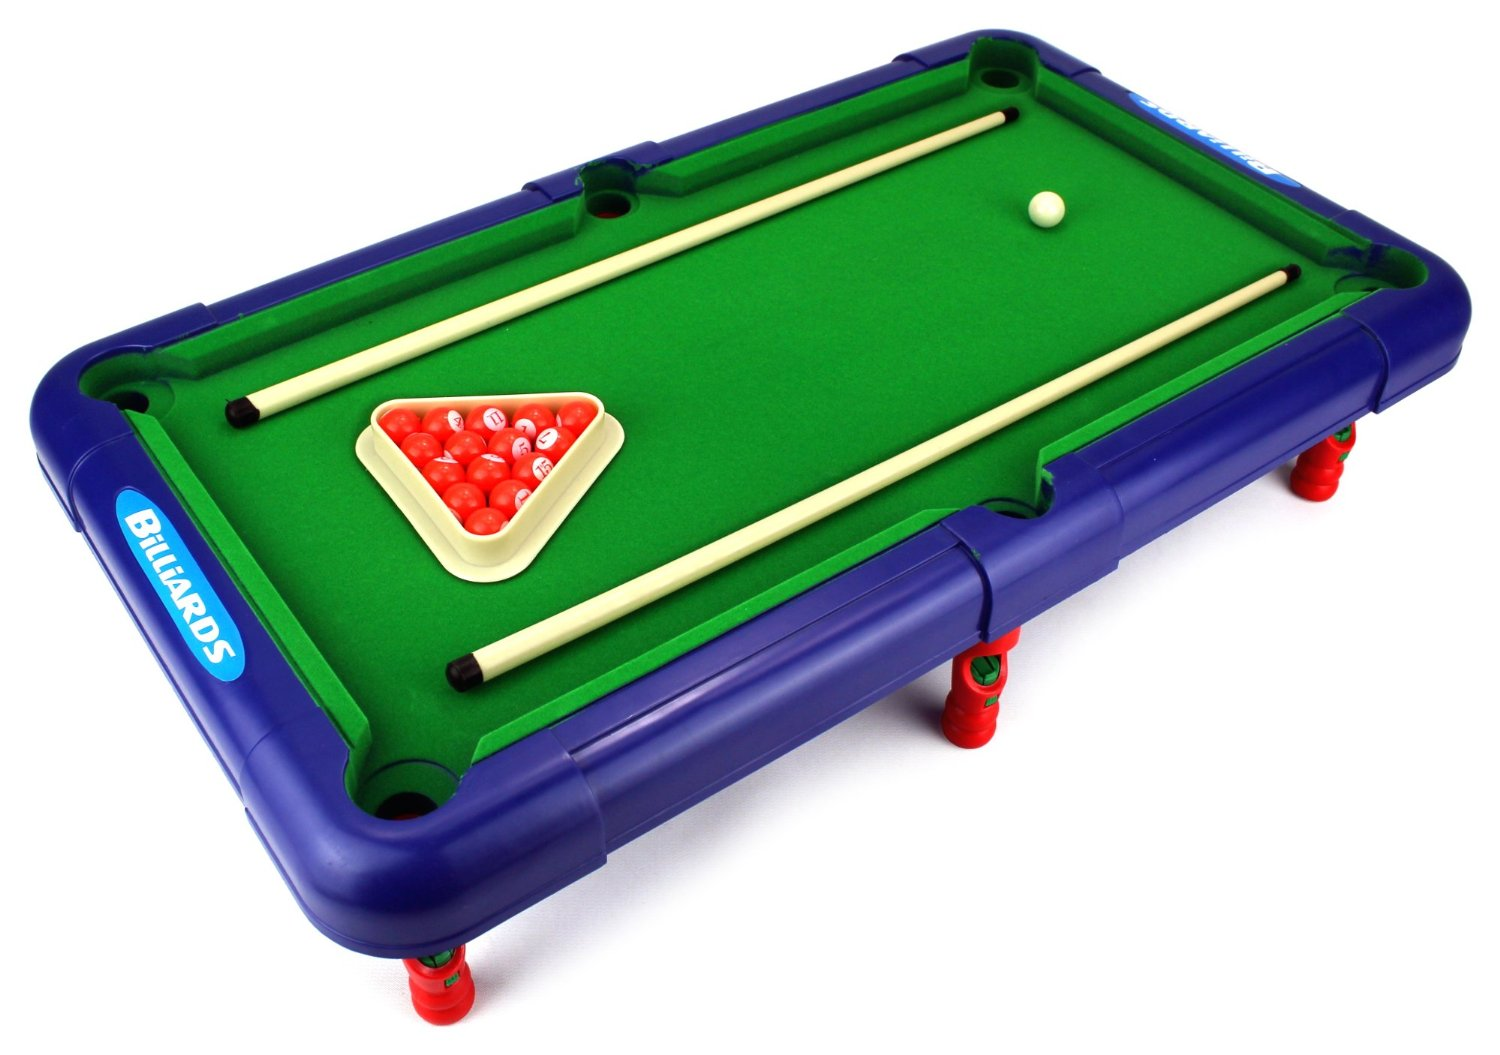 Superior Billiards Novelty Toy Billiard Pool Table Game W/ Table, Full Set  Of Billiard Balls, 2 Cues, Triangle   Walmart.com